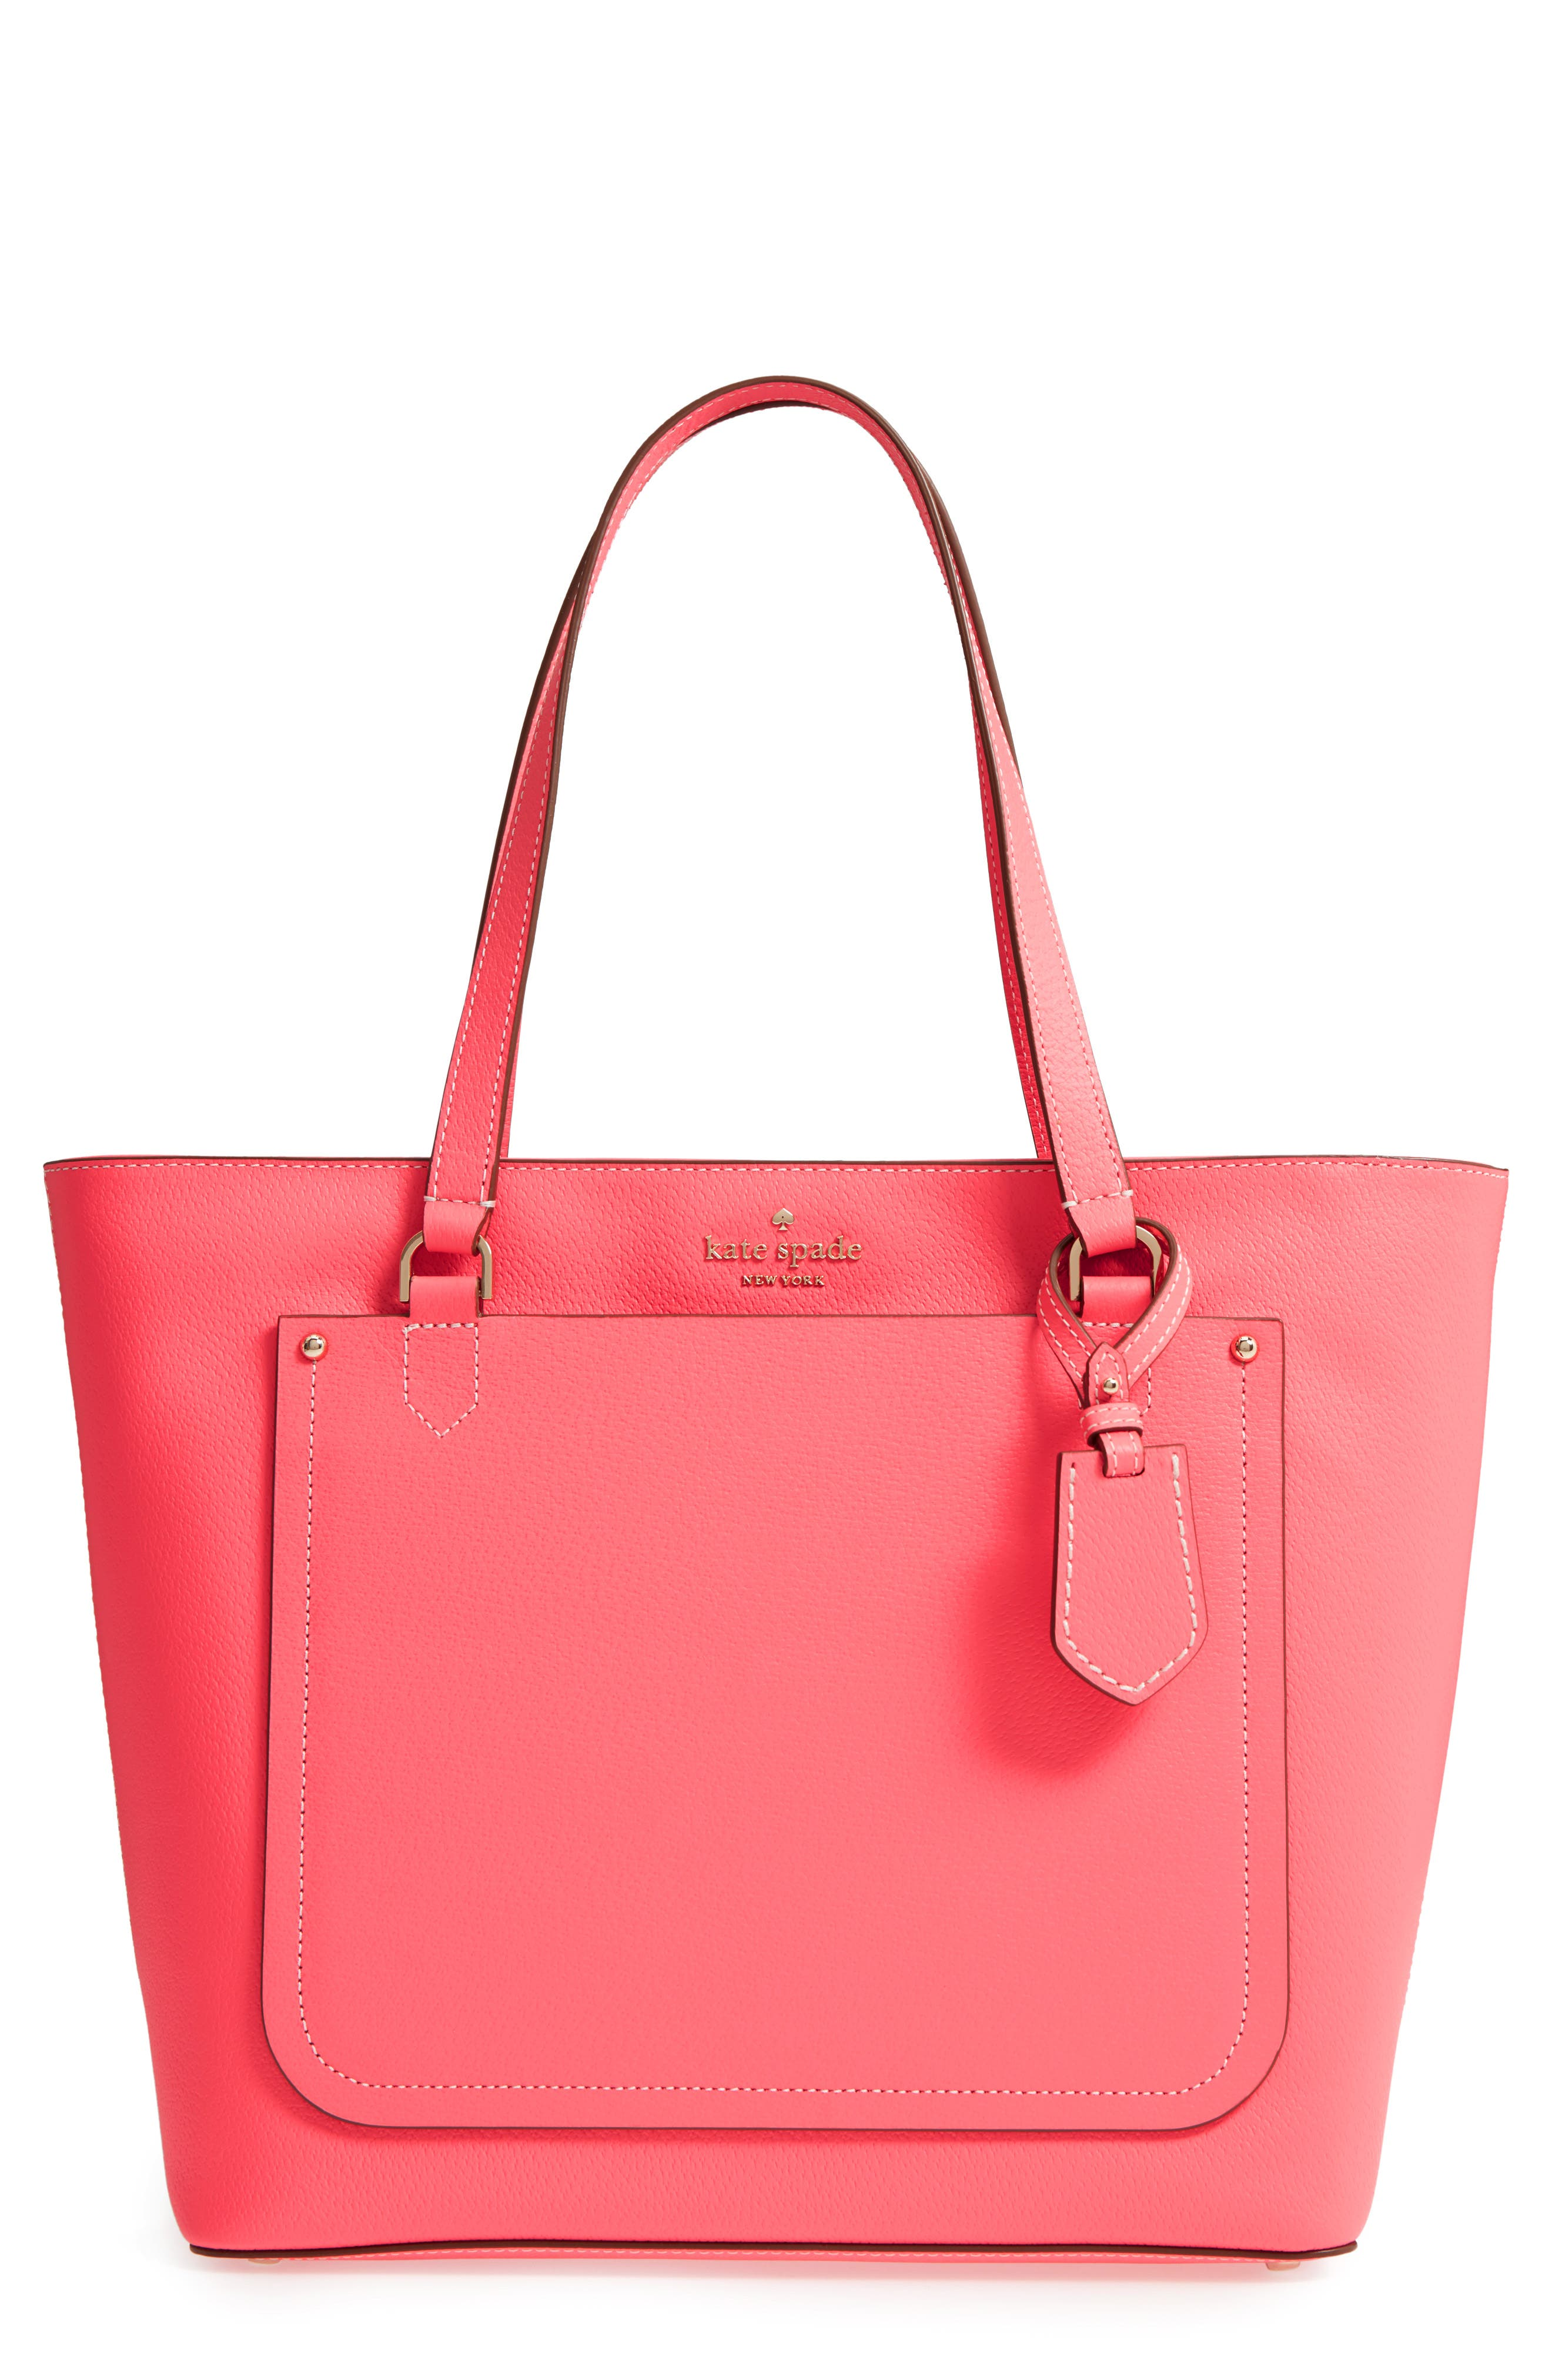 thompson street - kimberly leather tote,                             Main thumbnail 1, color,                             652